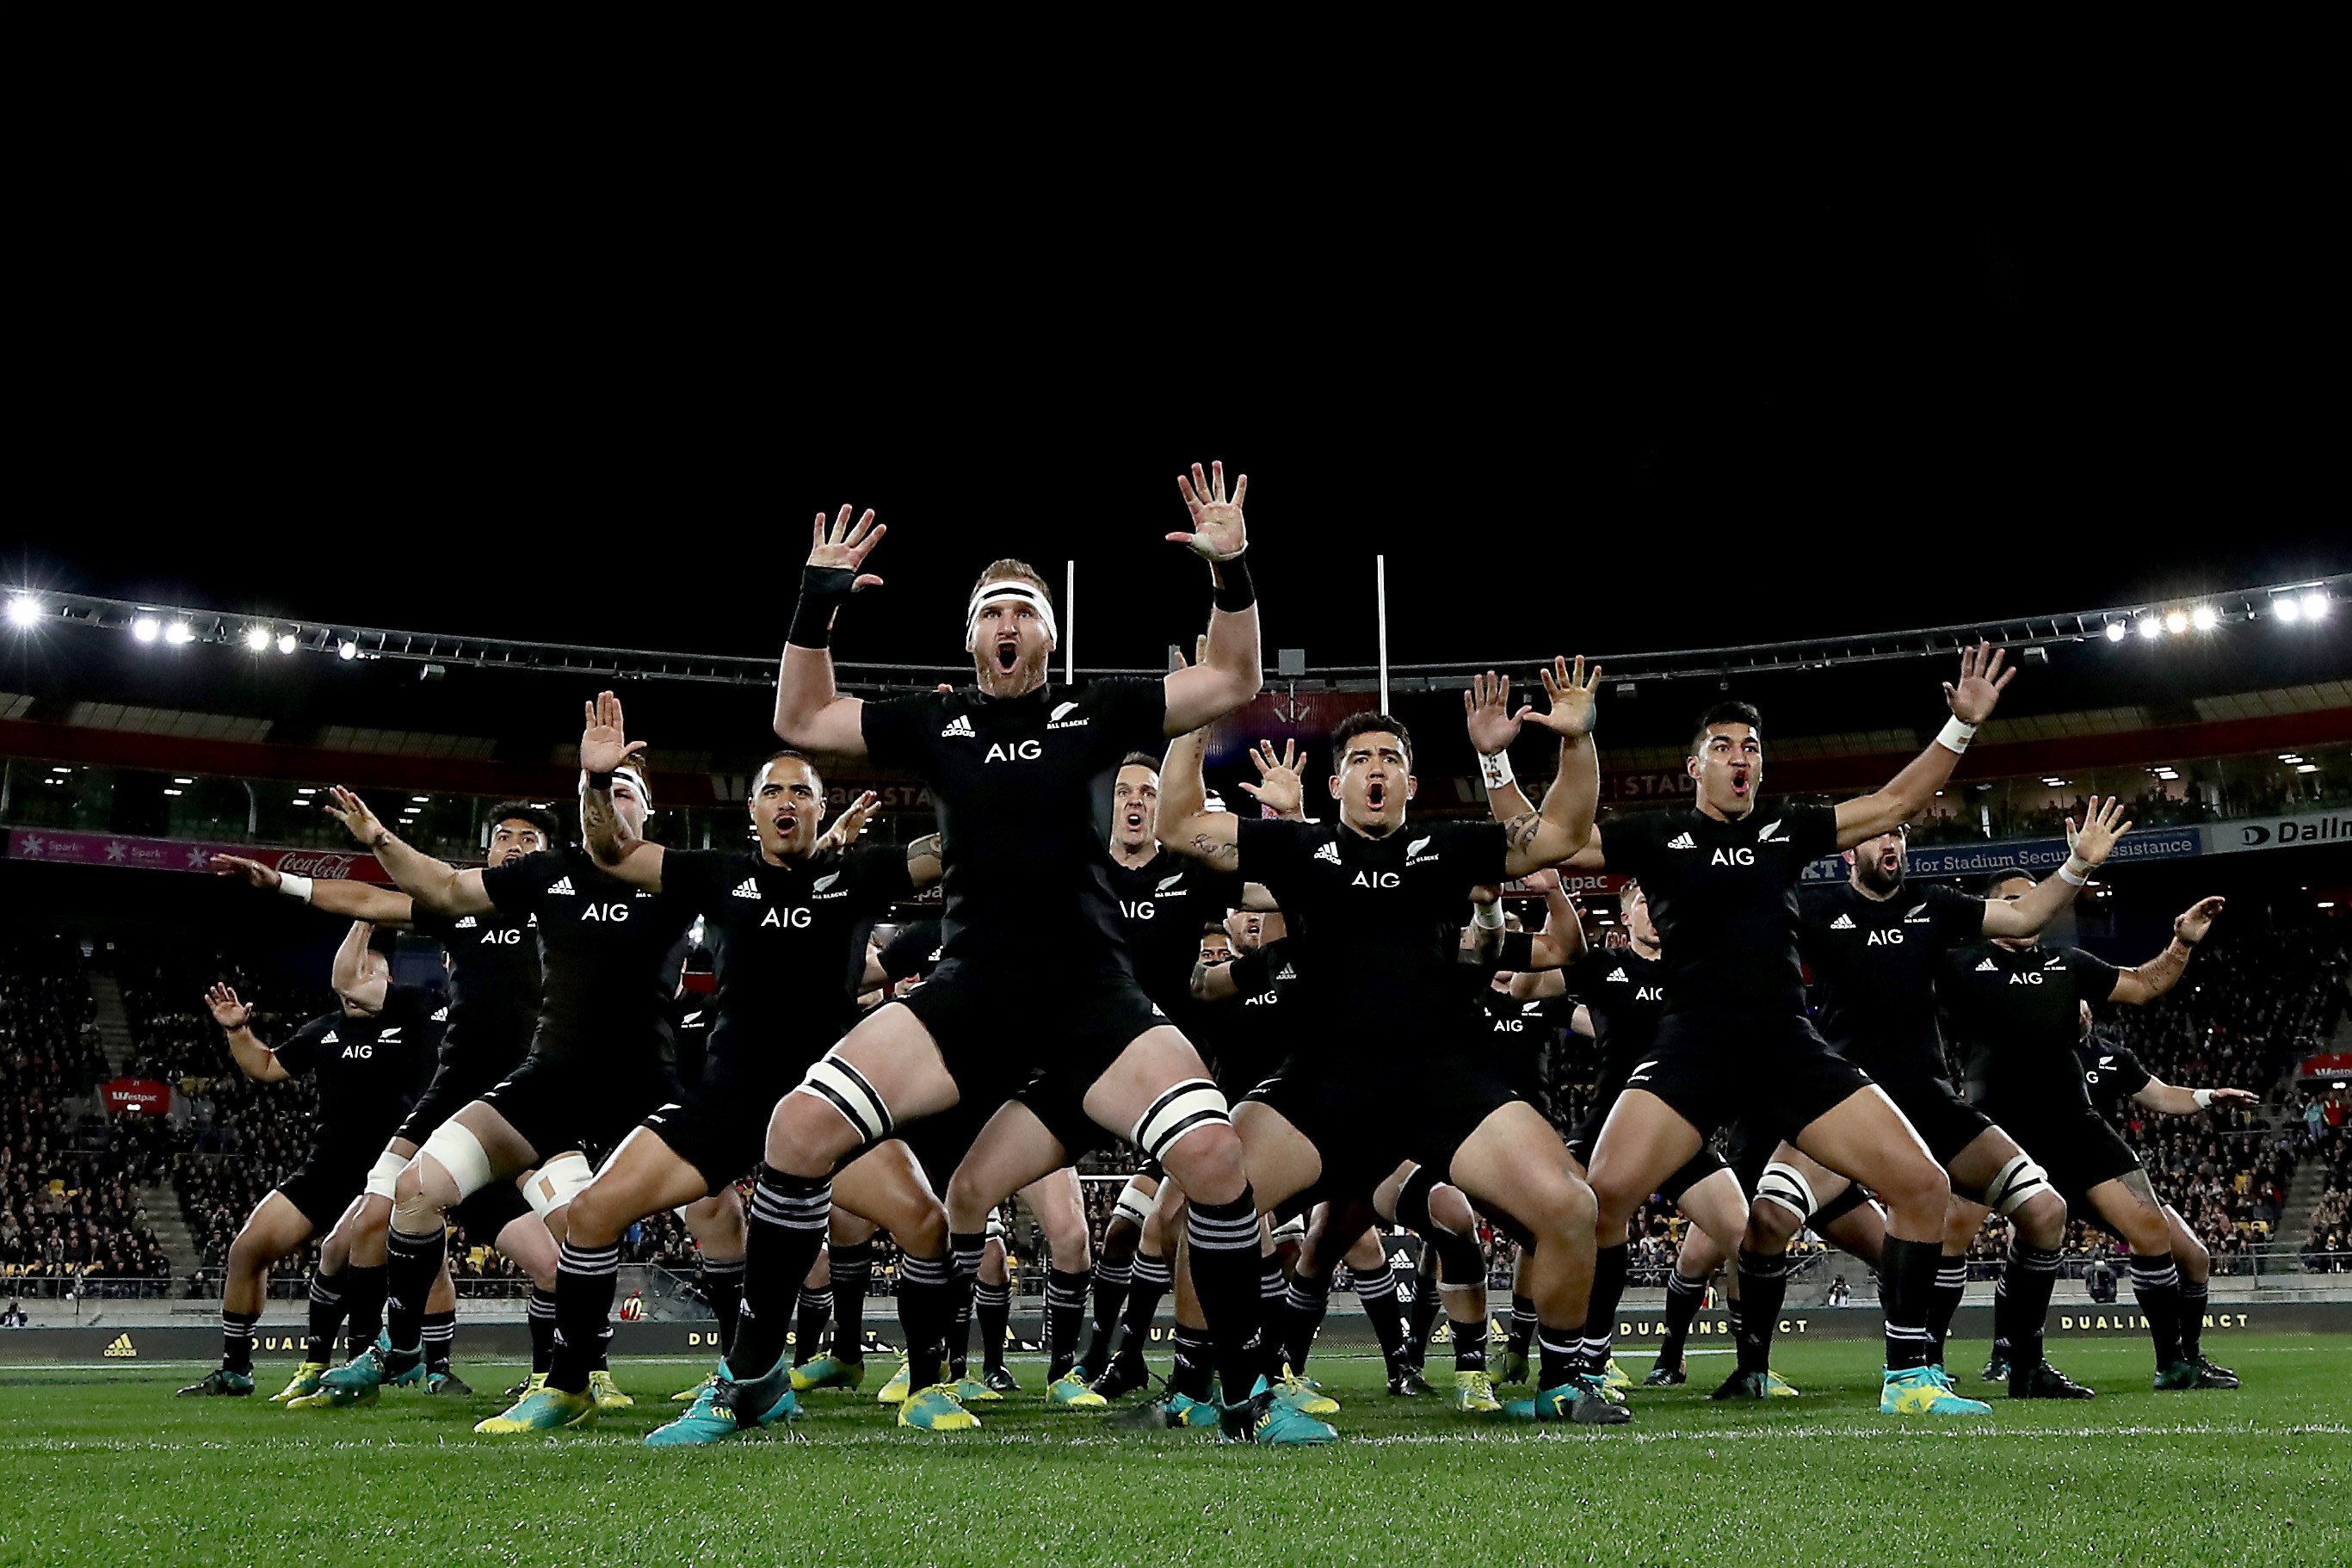 15 September 2018: The All Blacks performing the Haka during The Rugby Championship match between the All Blacks and the Springboks at Westpac Stadium in Wellington, New Zealand.